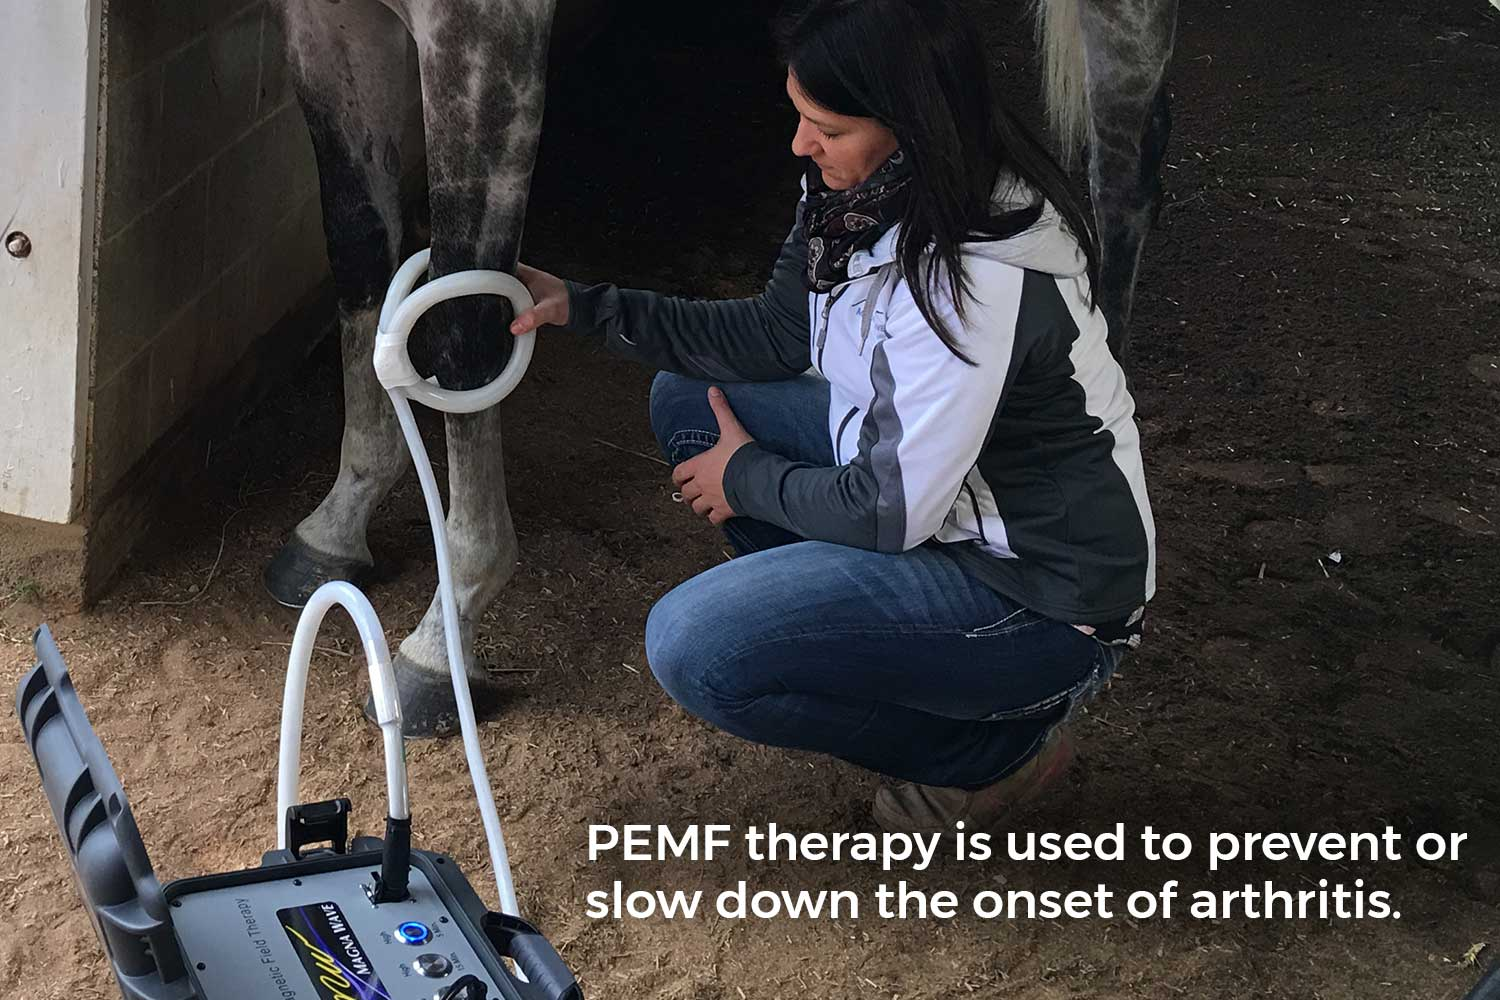 PEMF therapy is used to prevent or slow down the onset of arthritis.